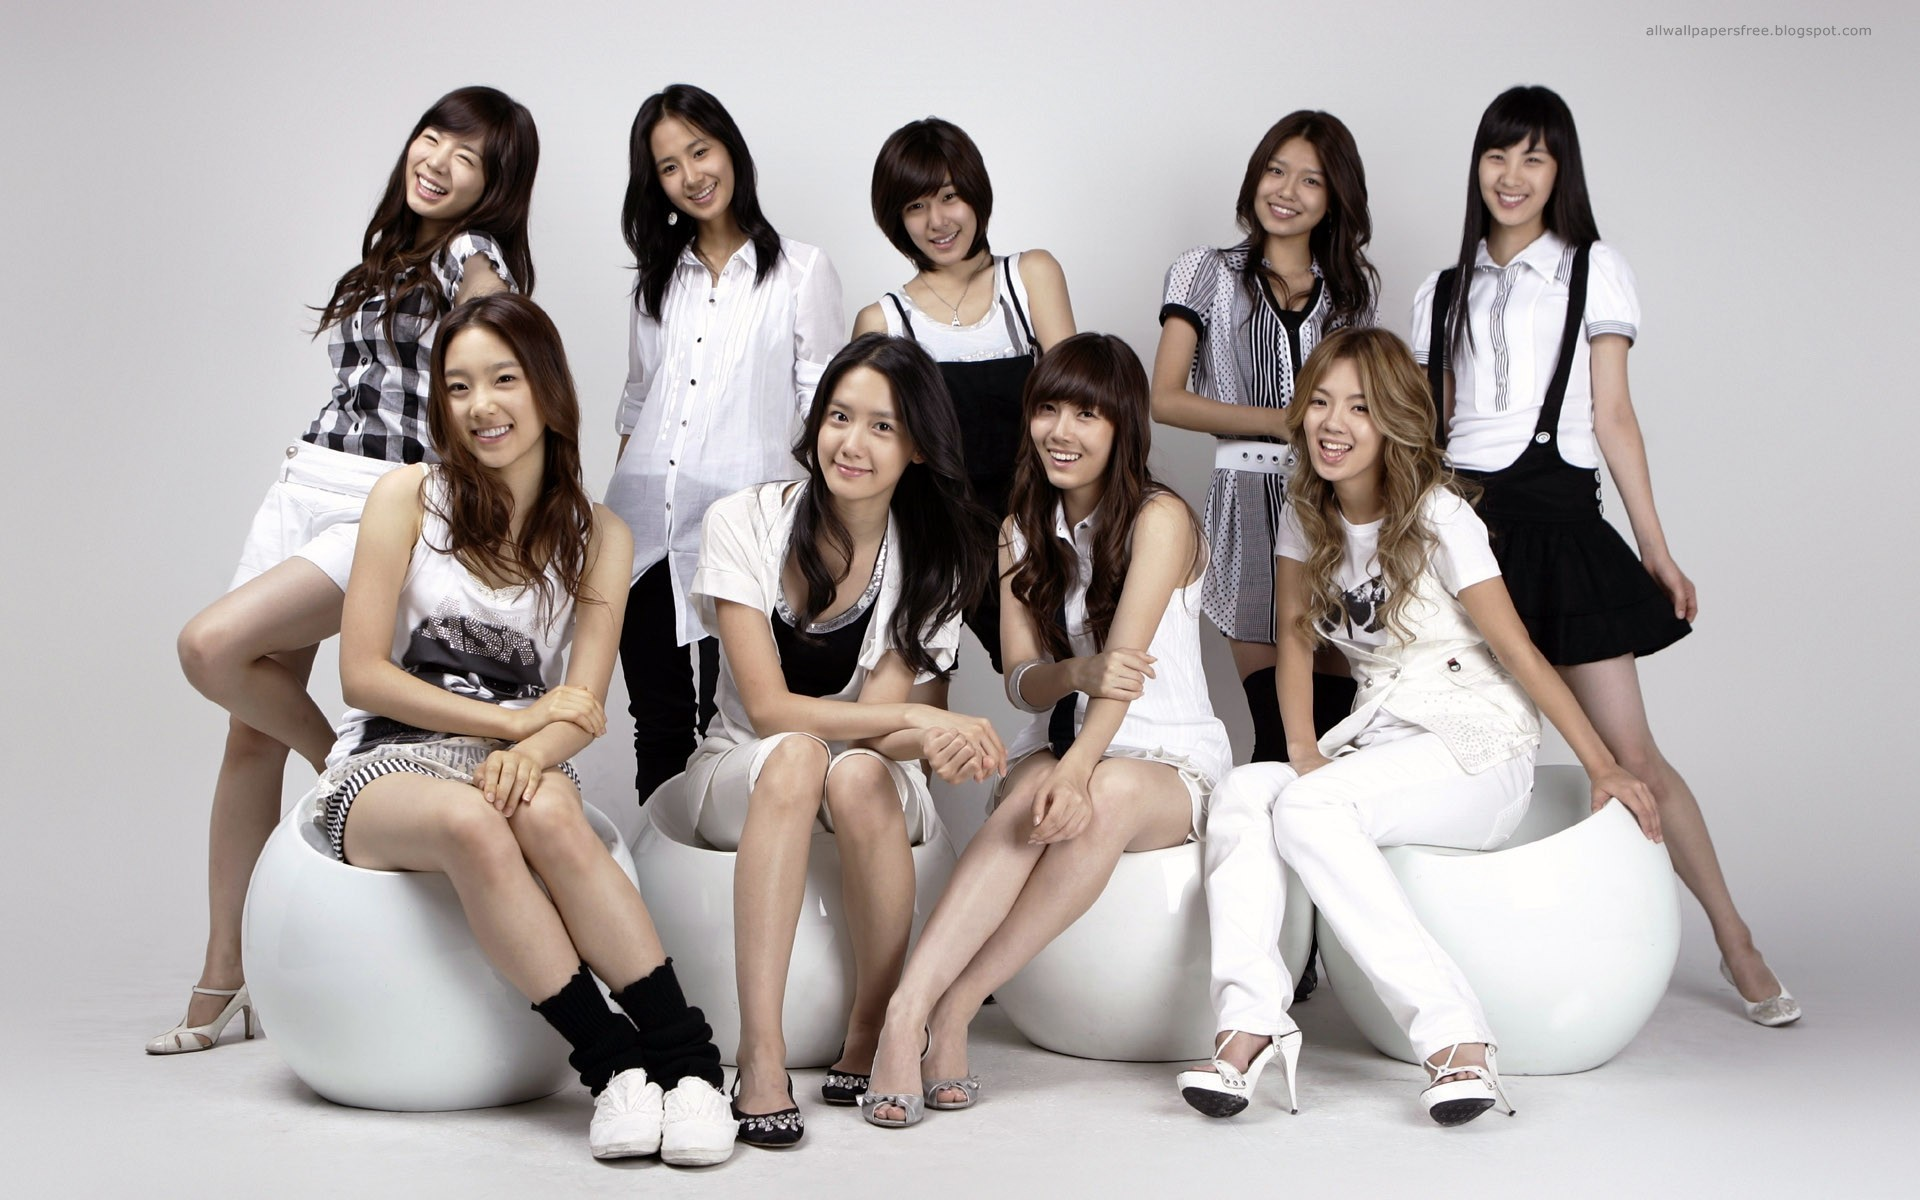 Asiaticas girls generation girl girls 1920x1200